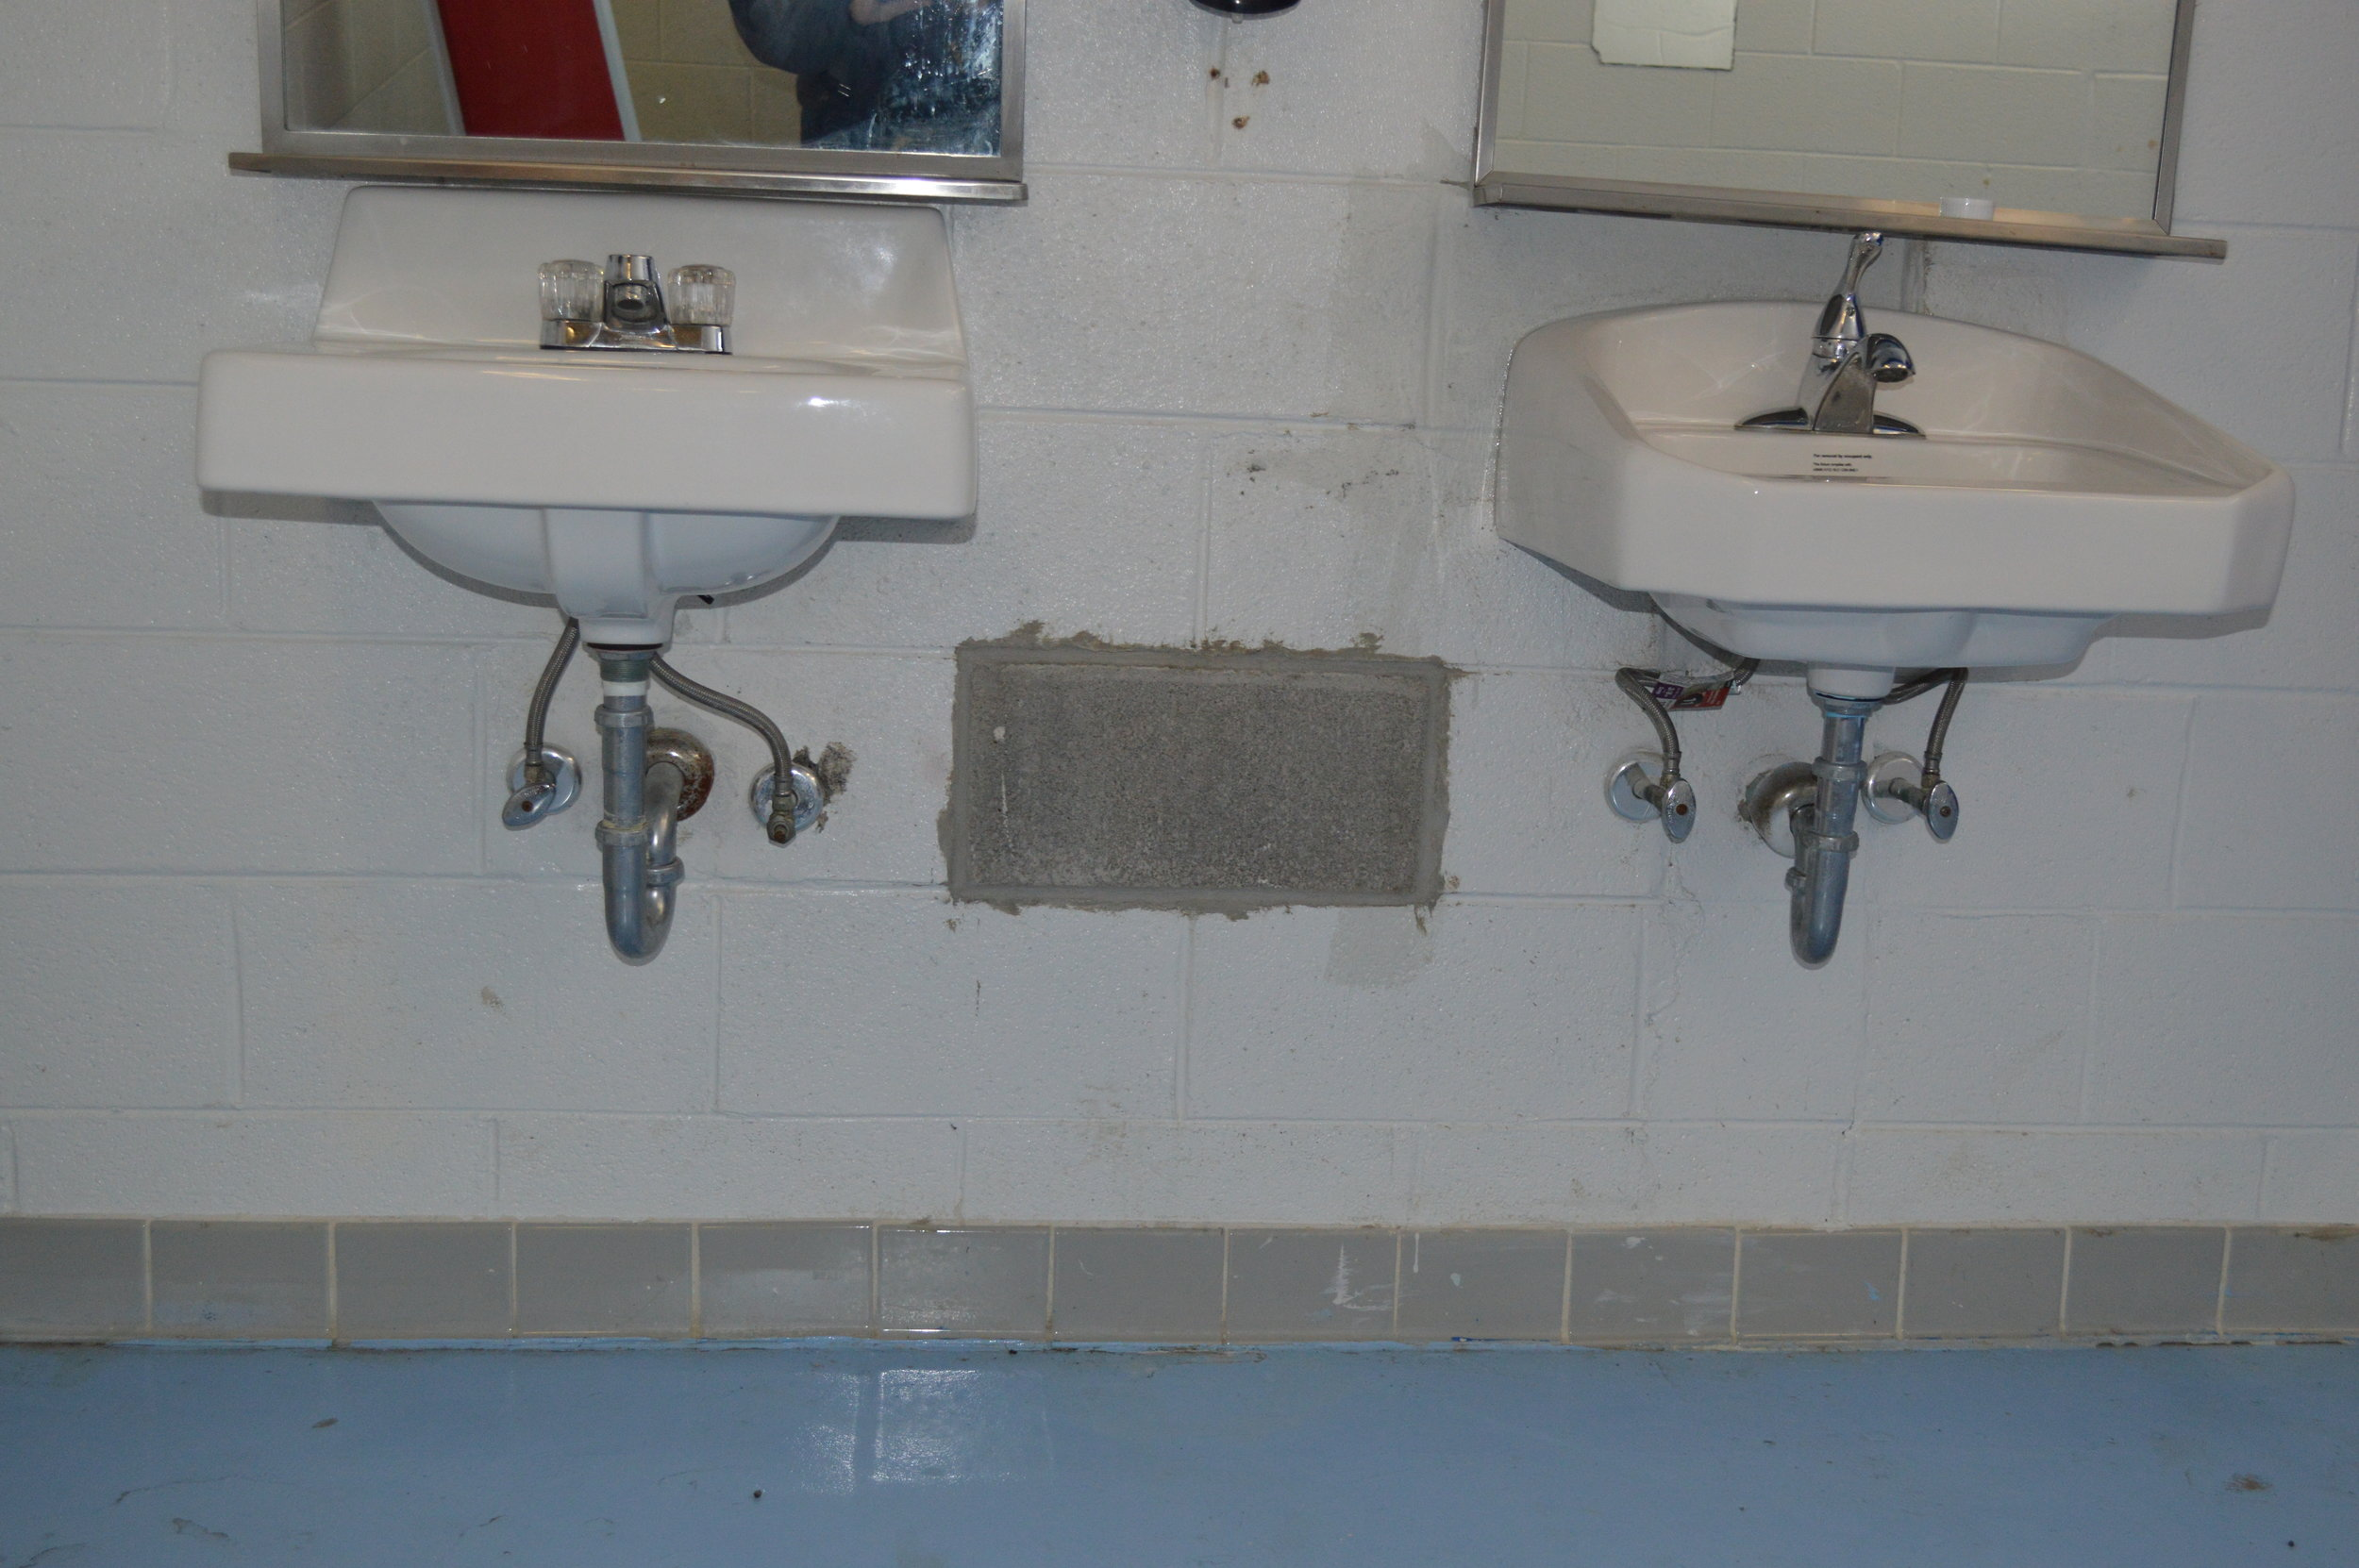 sinks with block replacement.JPG